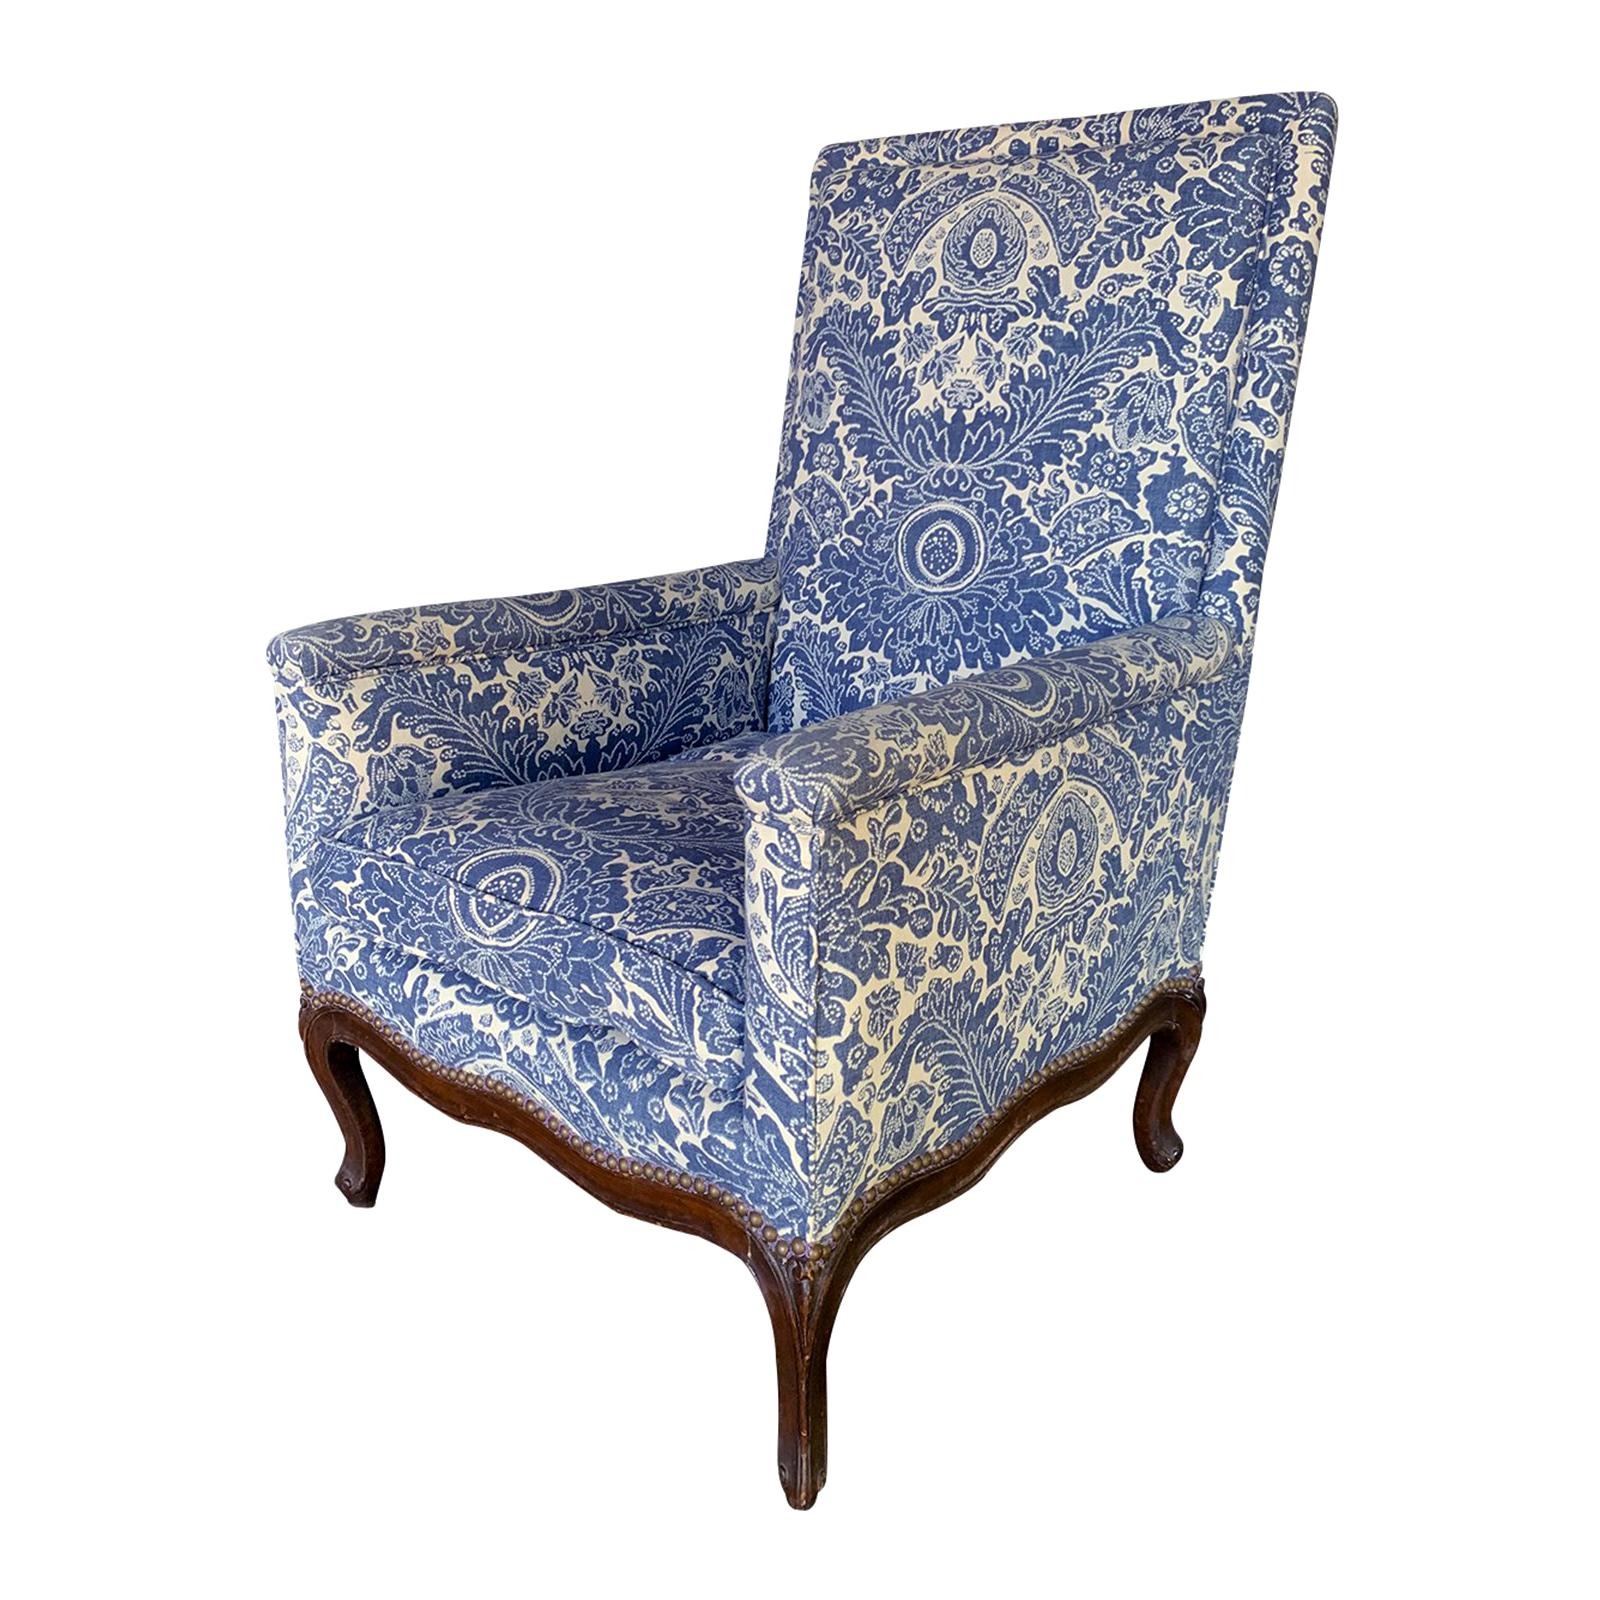 19th Century French Blue and White Upholstered Armchair